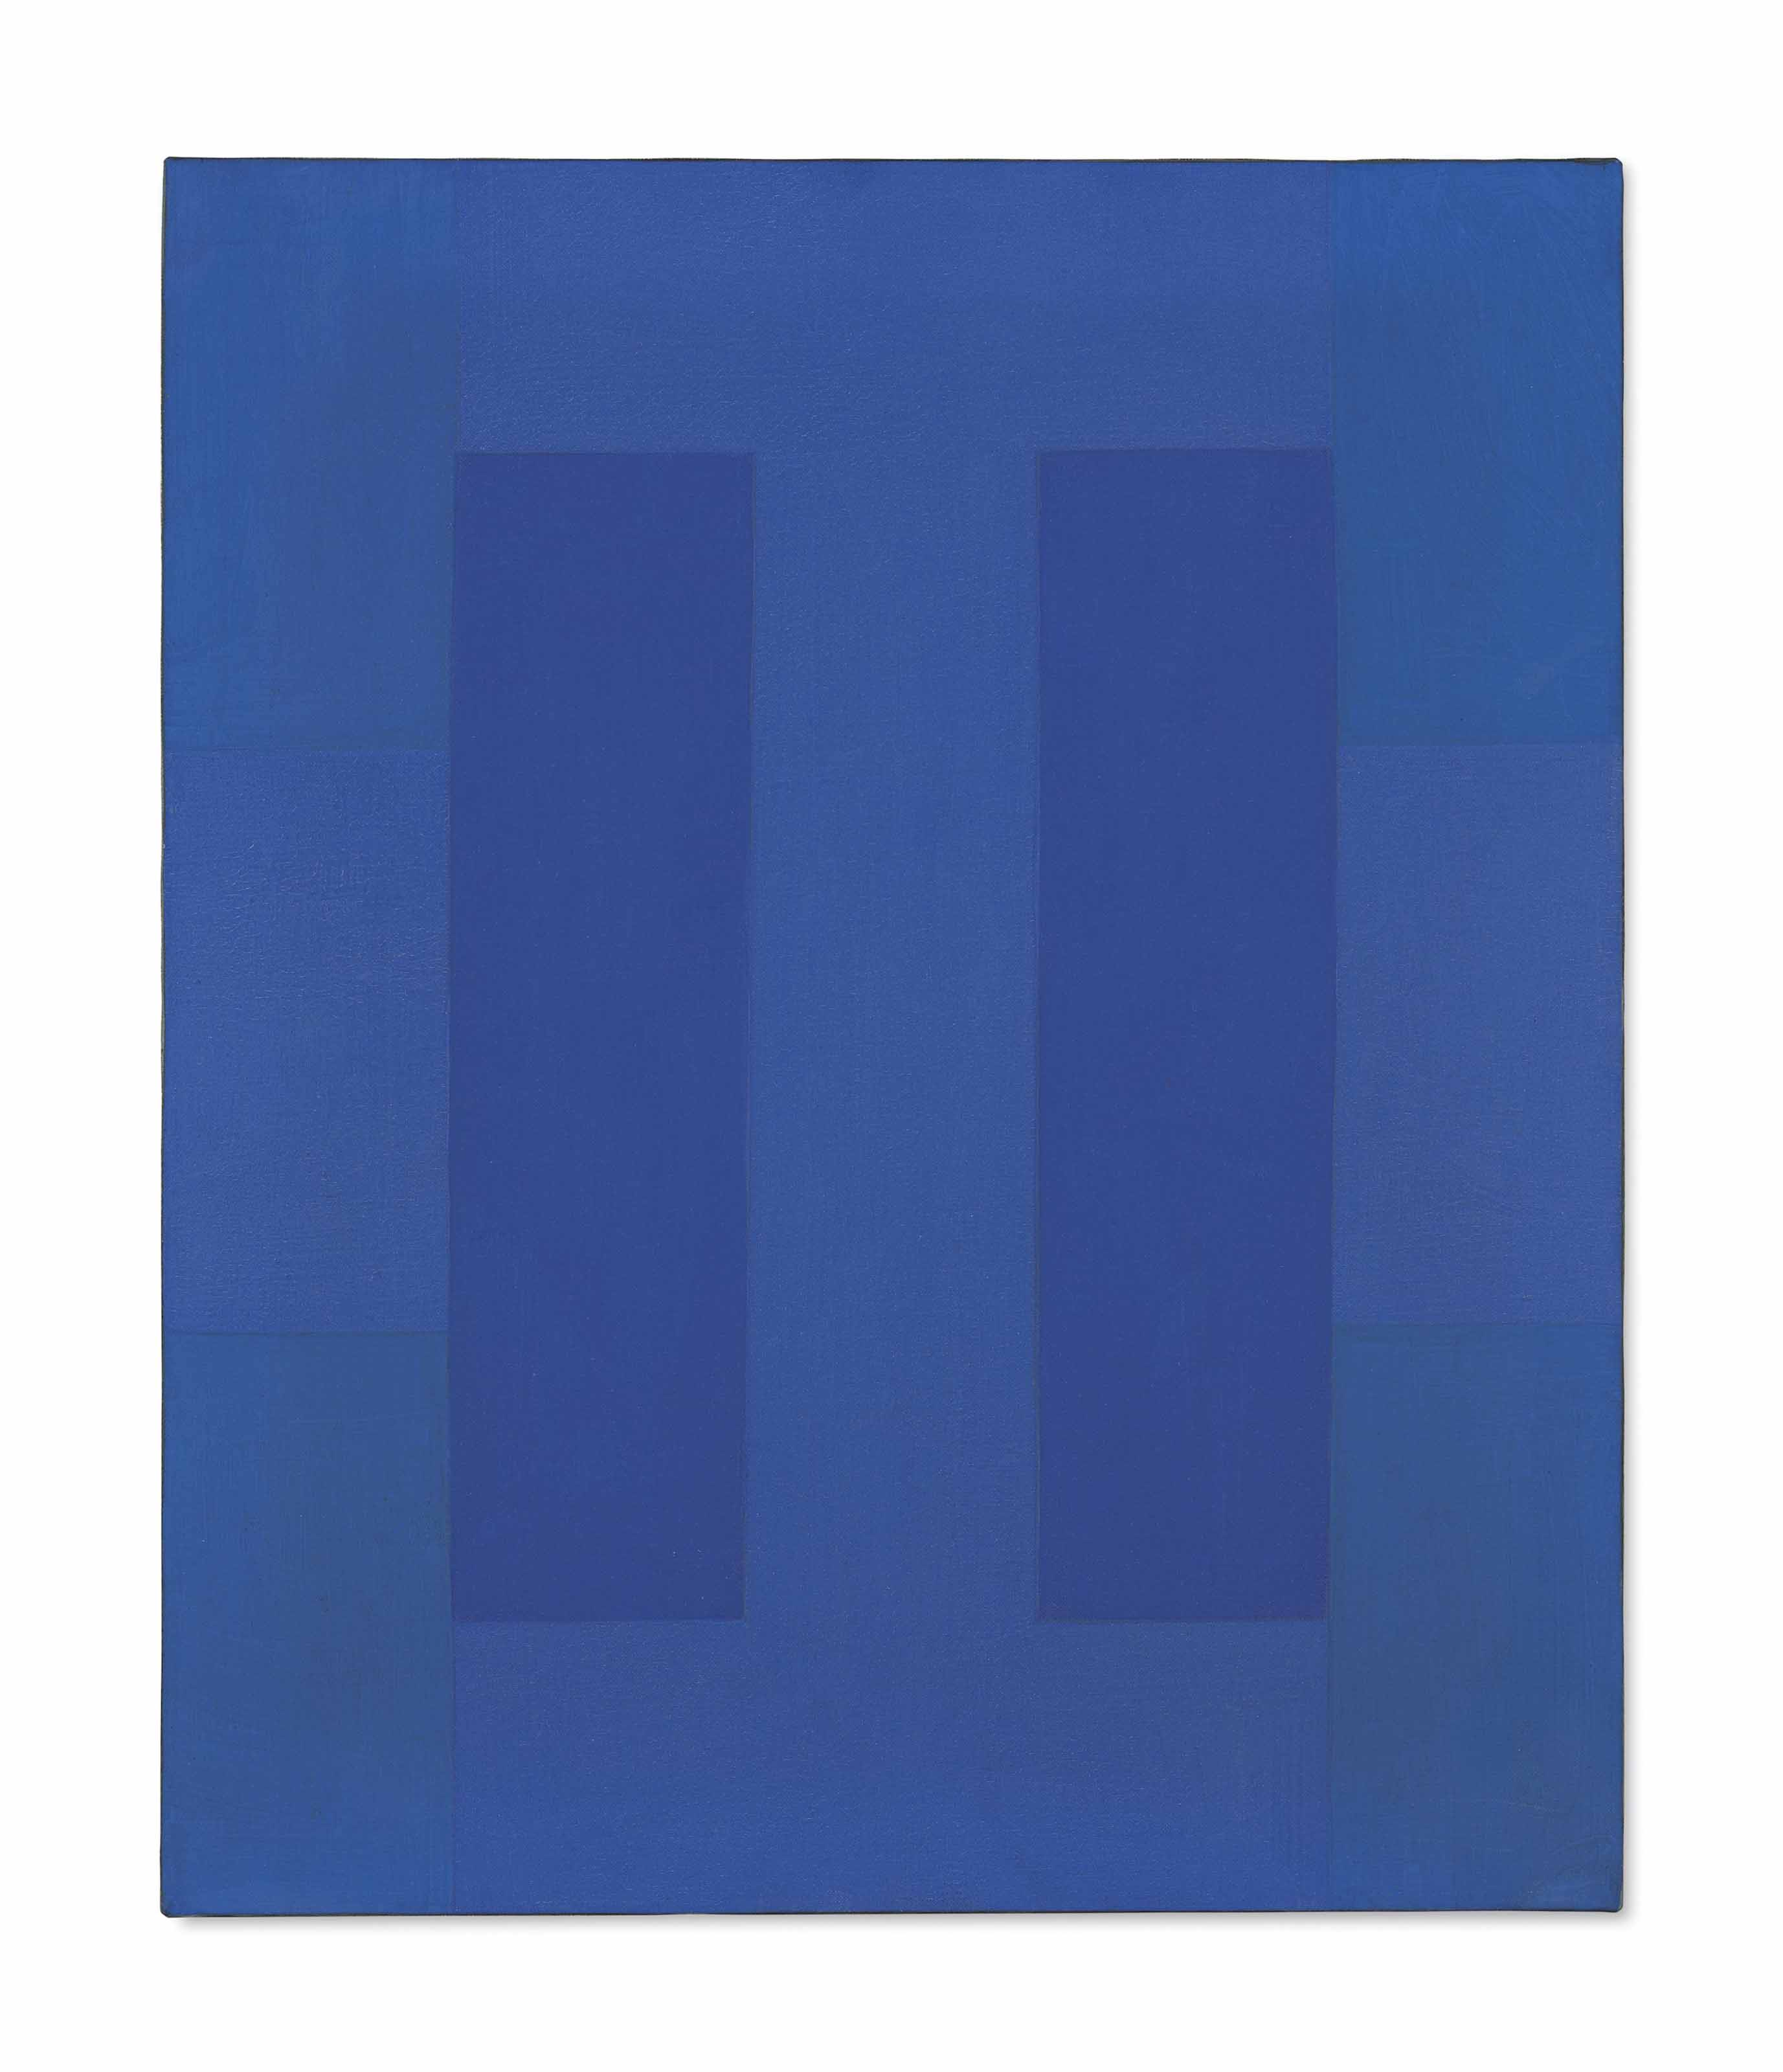 Ad Reinhardt (1913-1967)   Abstract Painting, Blue   1950s, Paintings    Christie's